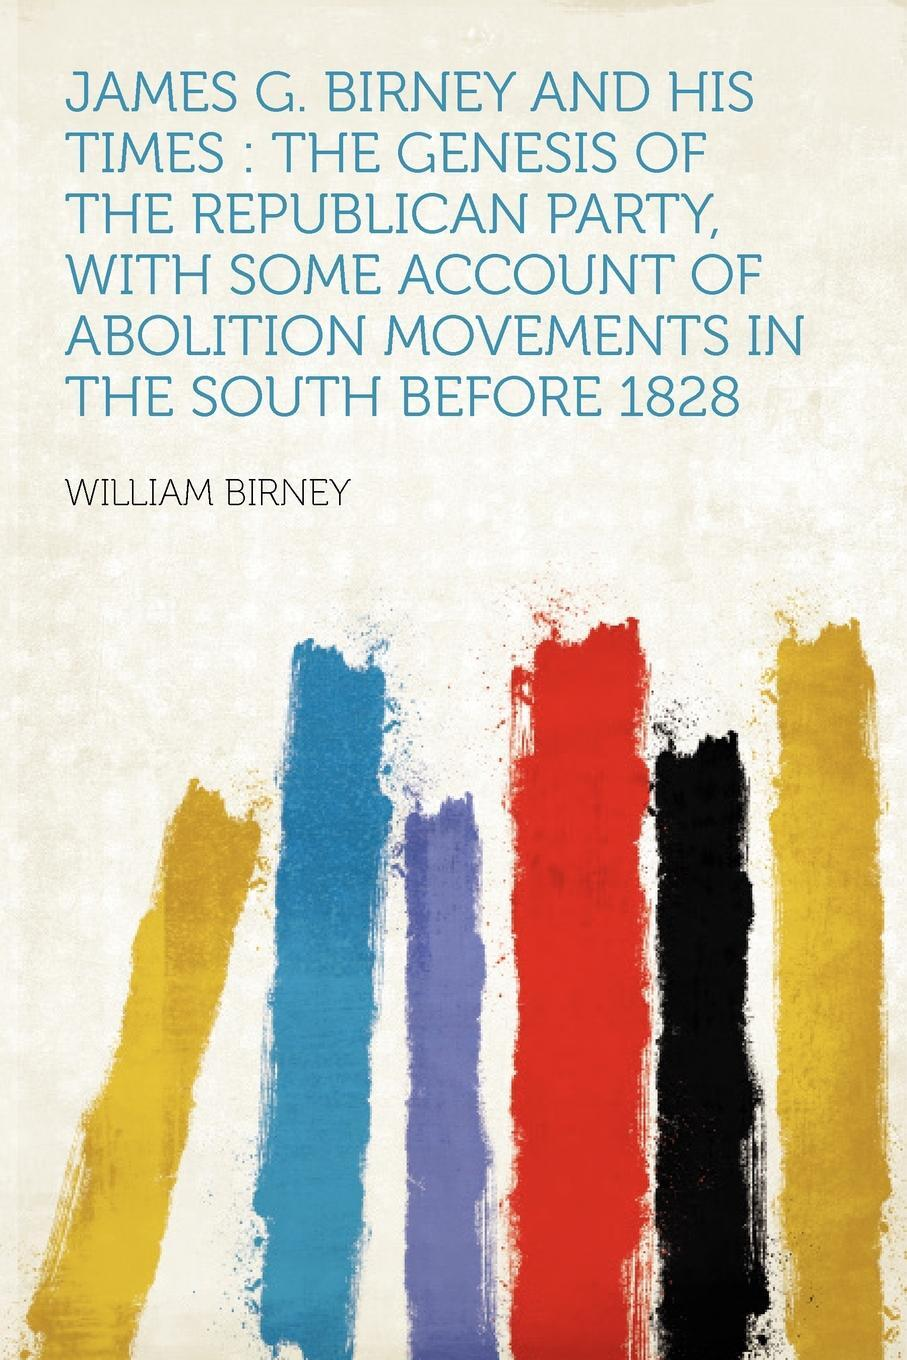 James G. Birney and His Times. the Genesis of the Republican Party, With Some Account of Abolition Movements in the South Before 1828